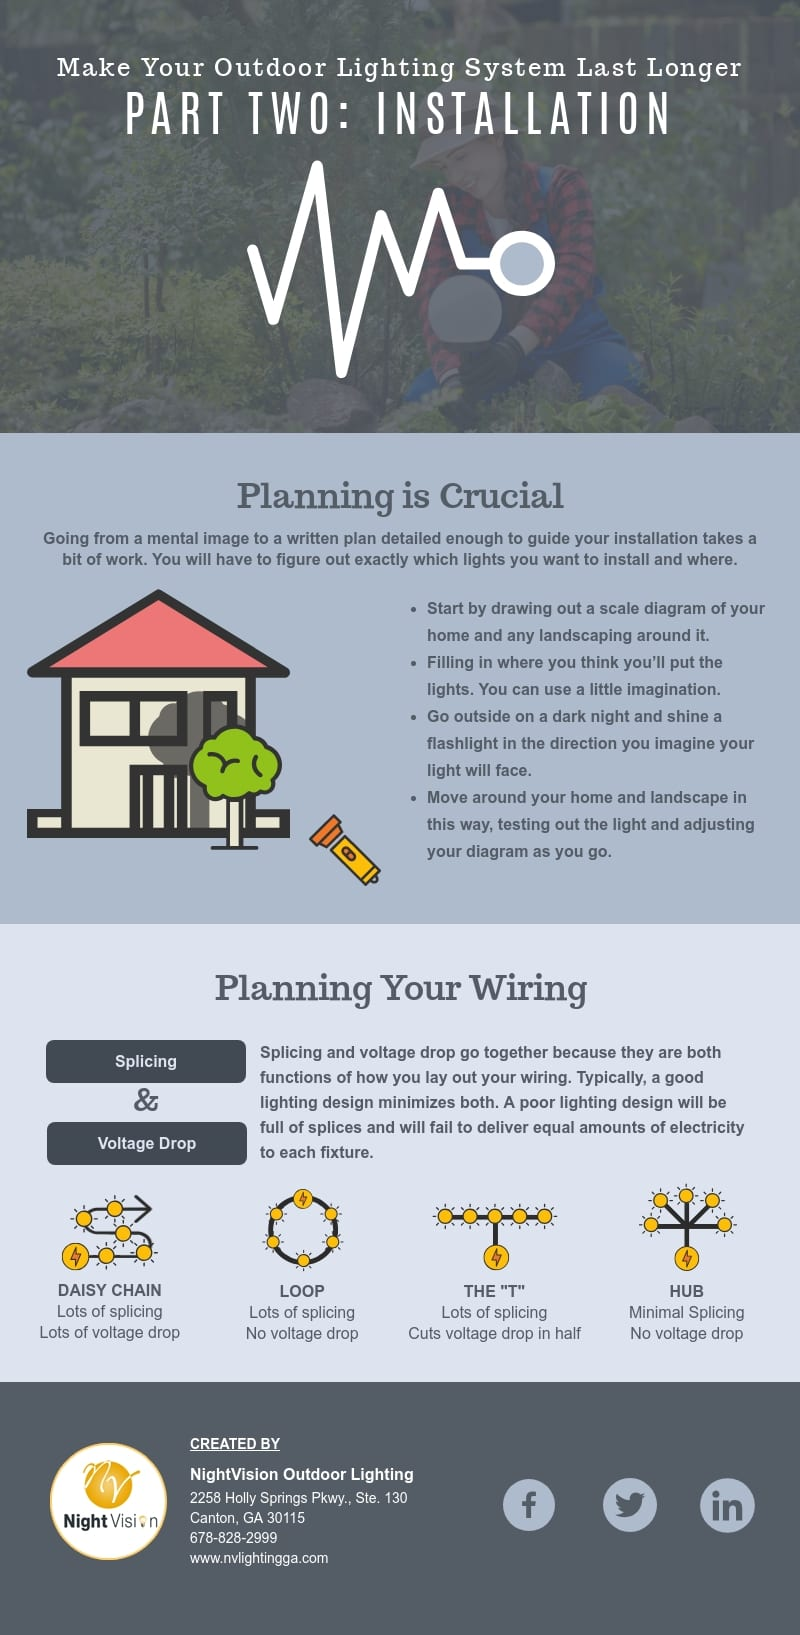 Make Your Outdoor Lighting System Last Longer – Part Two - Installation [infographic]